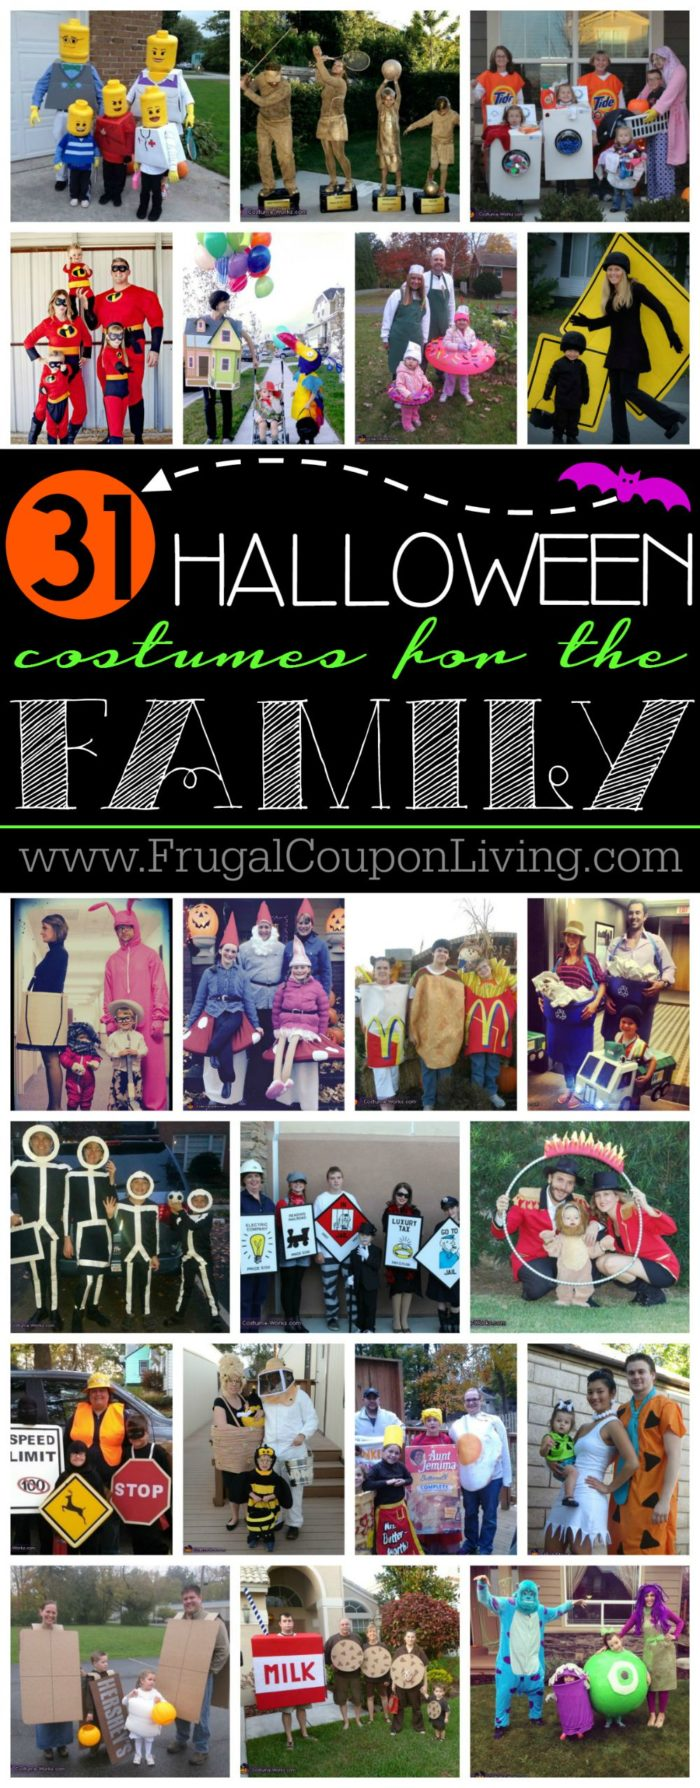 31 Family Halloween Costume Ideas on Frugal Coupon Living